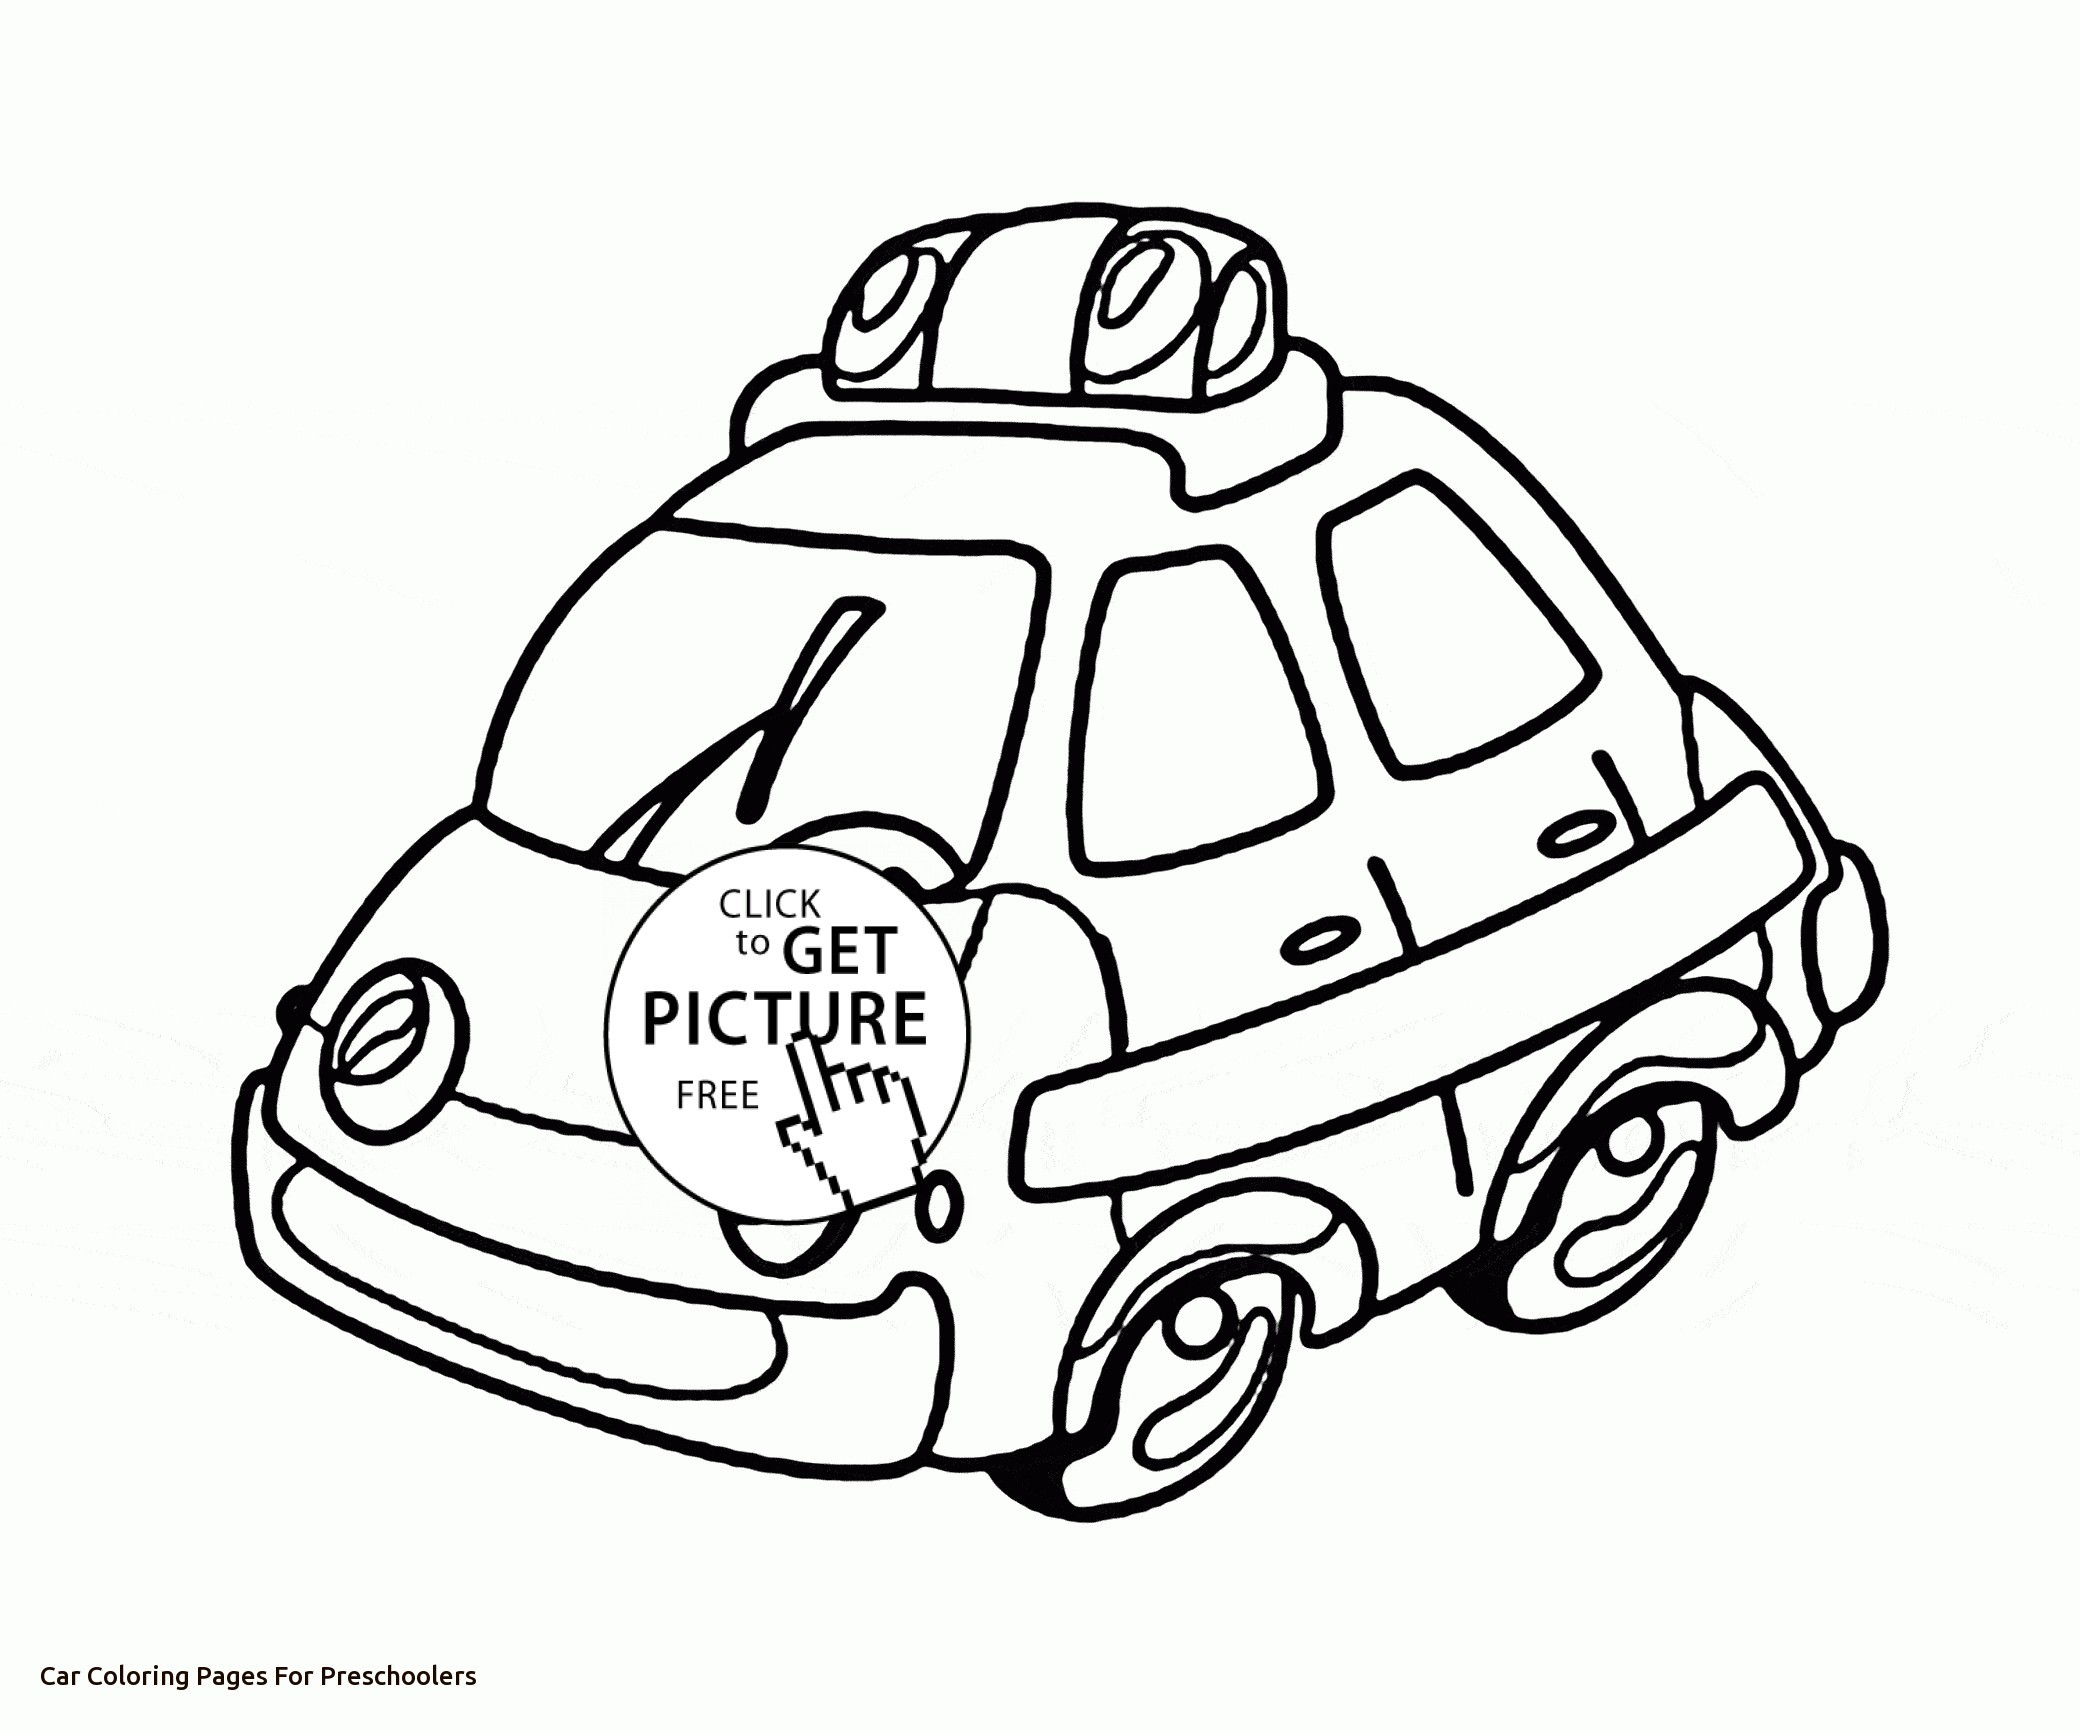 2080x1733 Jeep Car Transportation Coloring Pages For Kids Inspirational